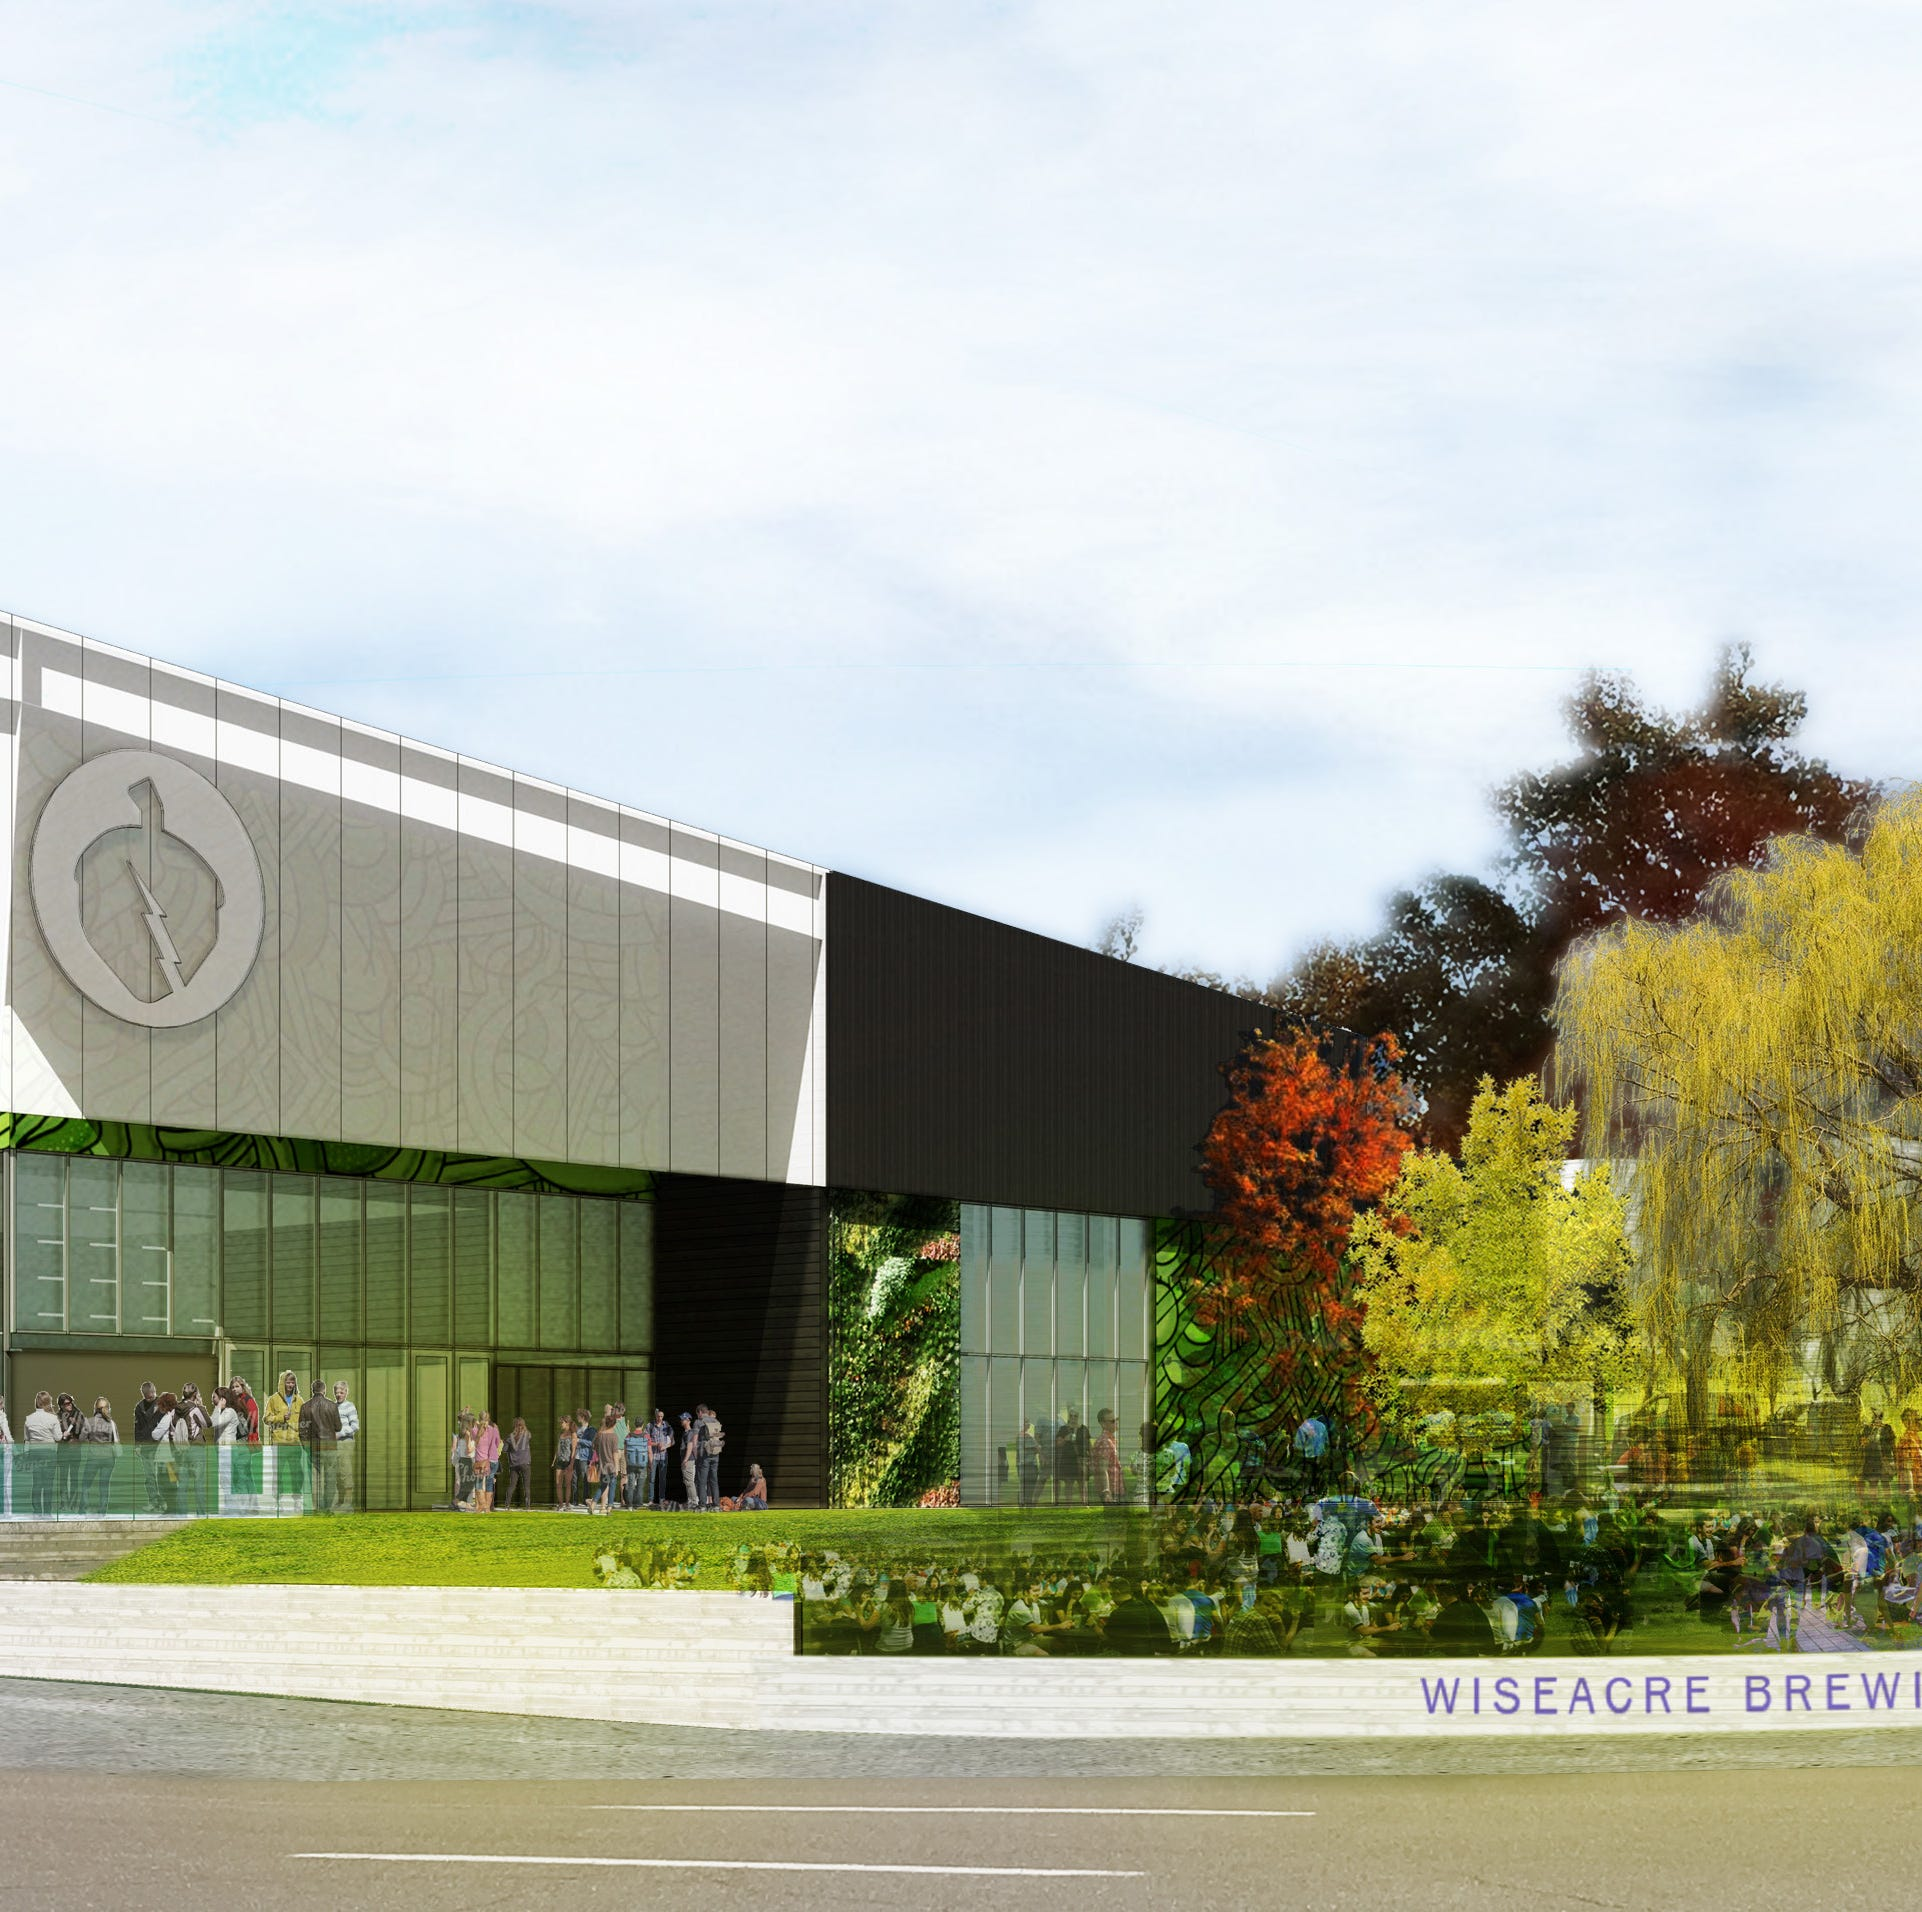 Wiseacre expects to bring at least 40 jobs to Downtown with new brewery